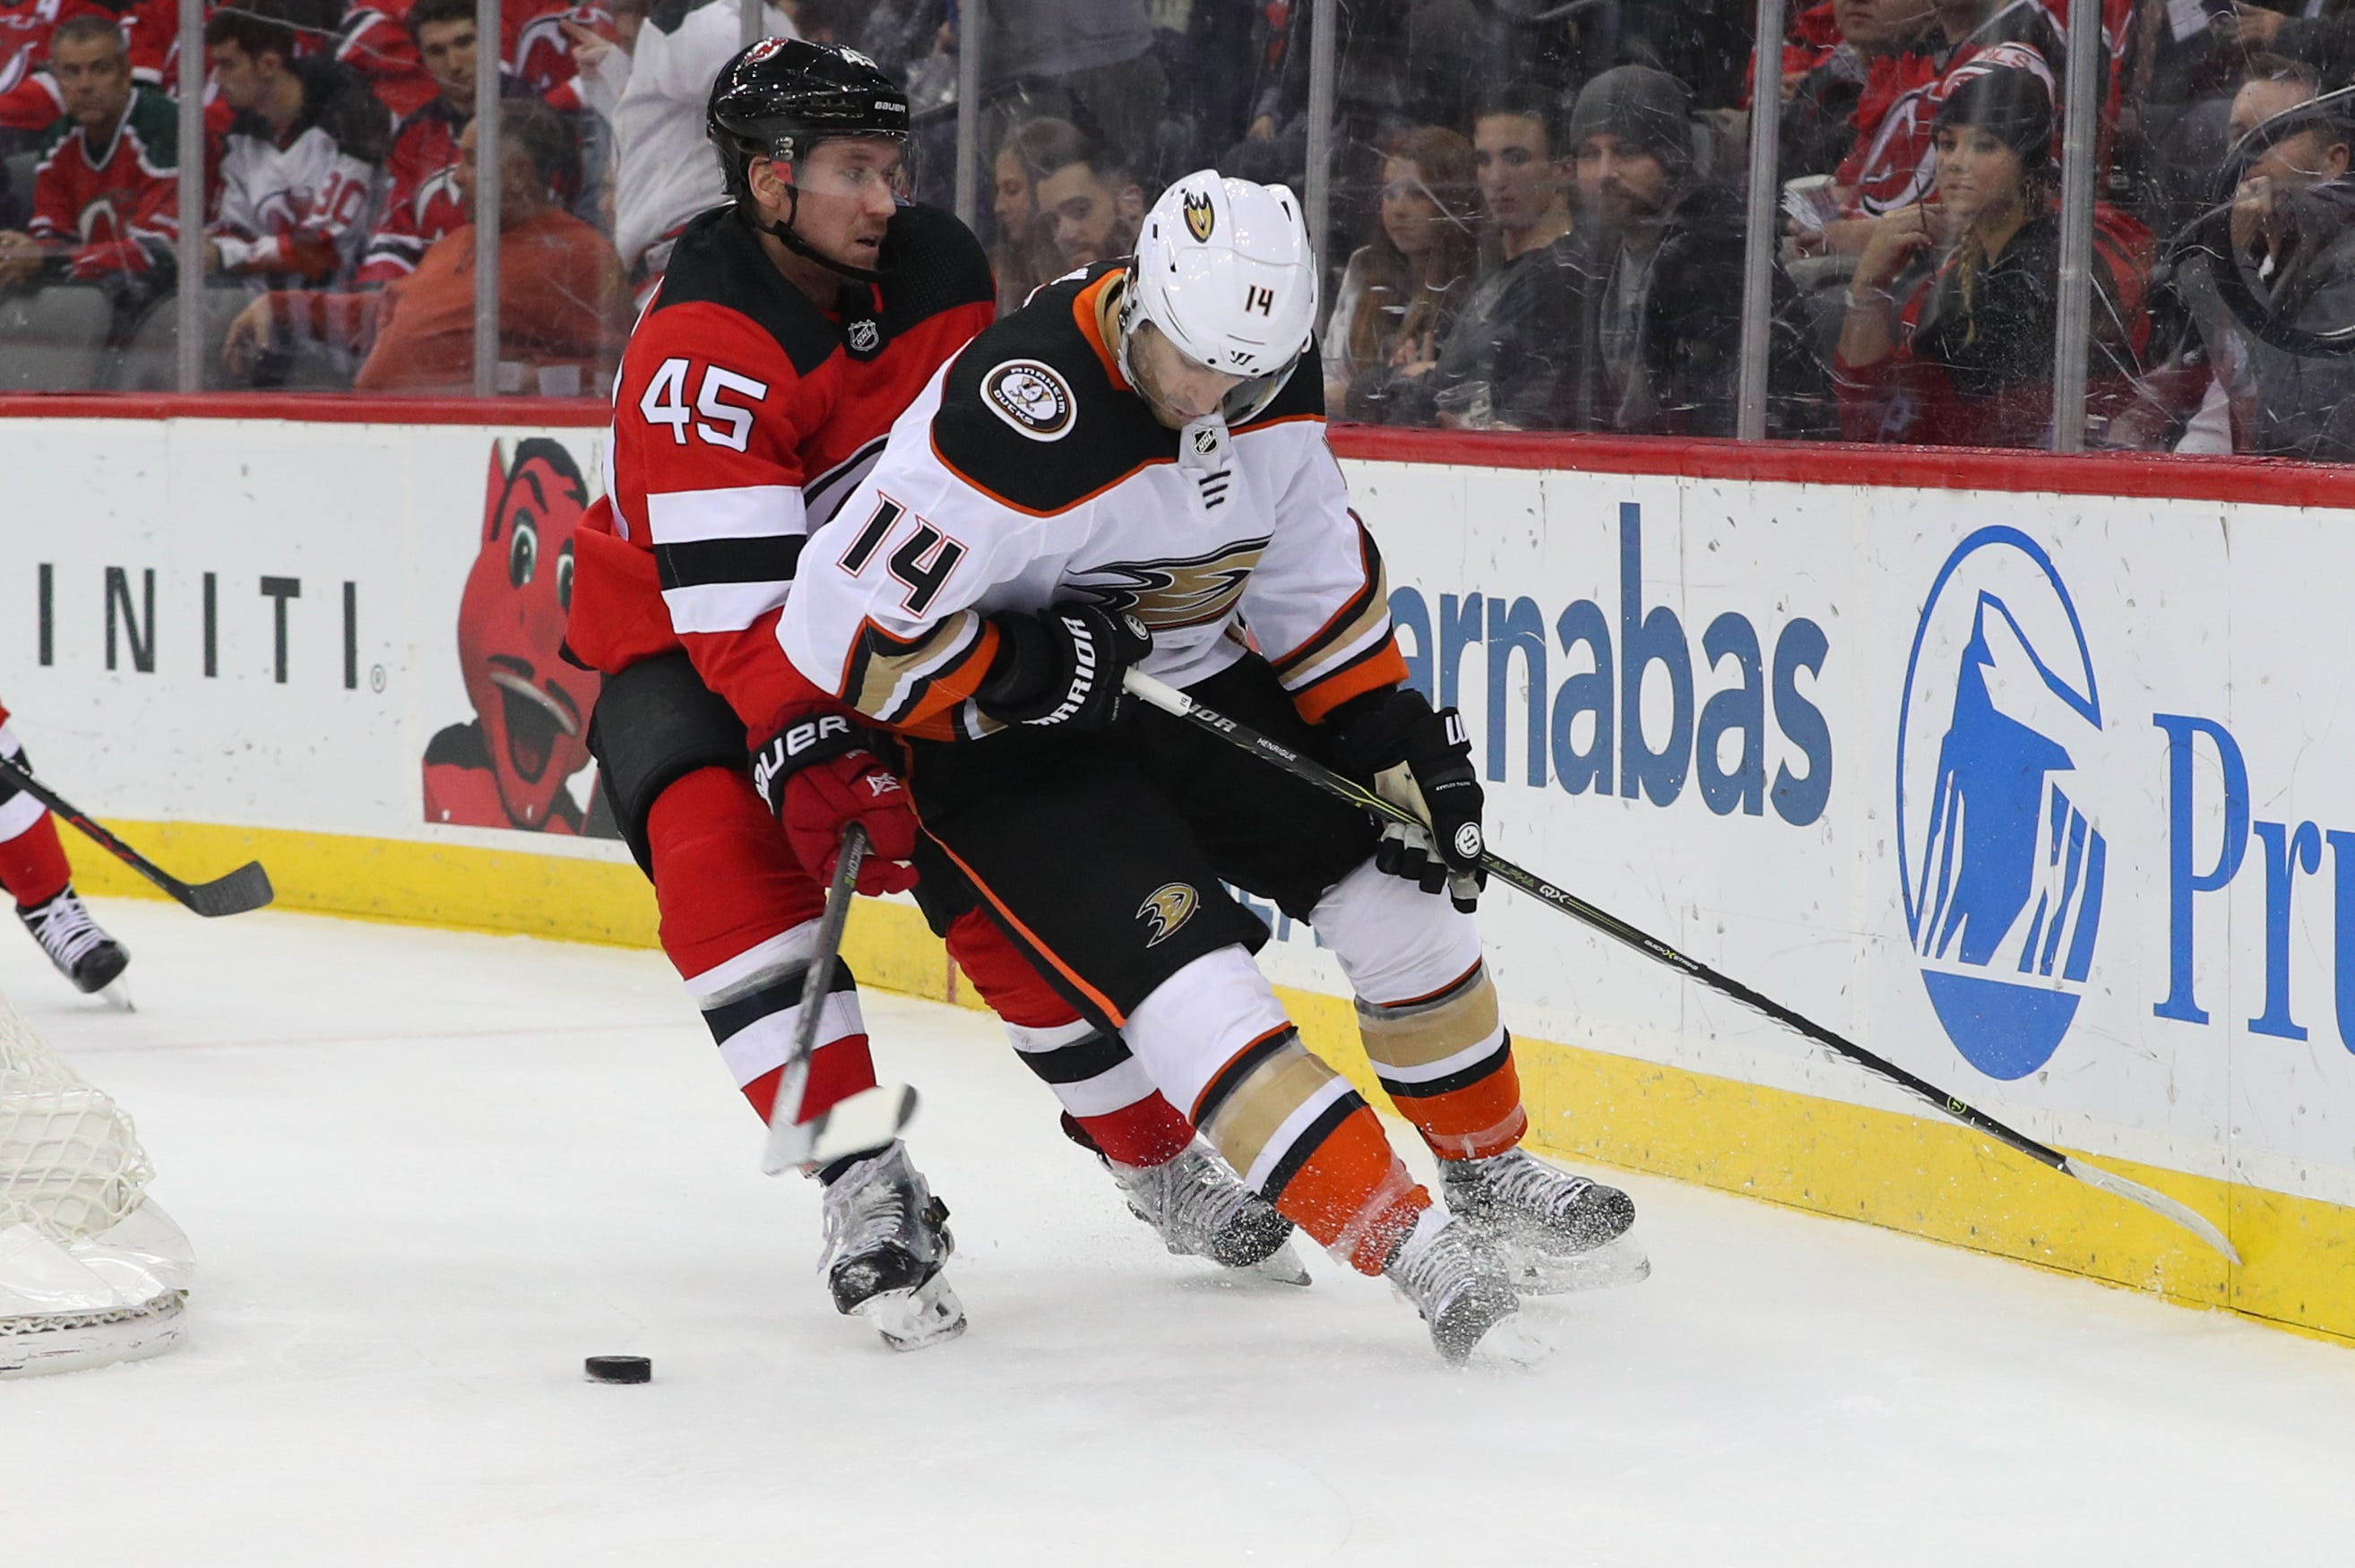 Ducks' Adam Henrique scores nice goal vs. Devils around player he was traded for